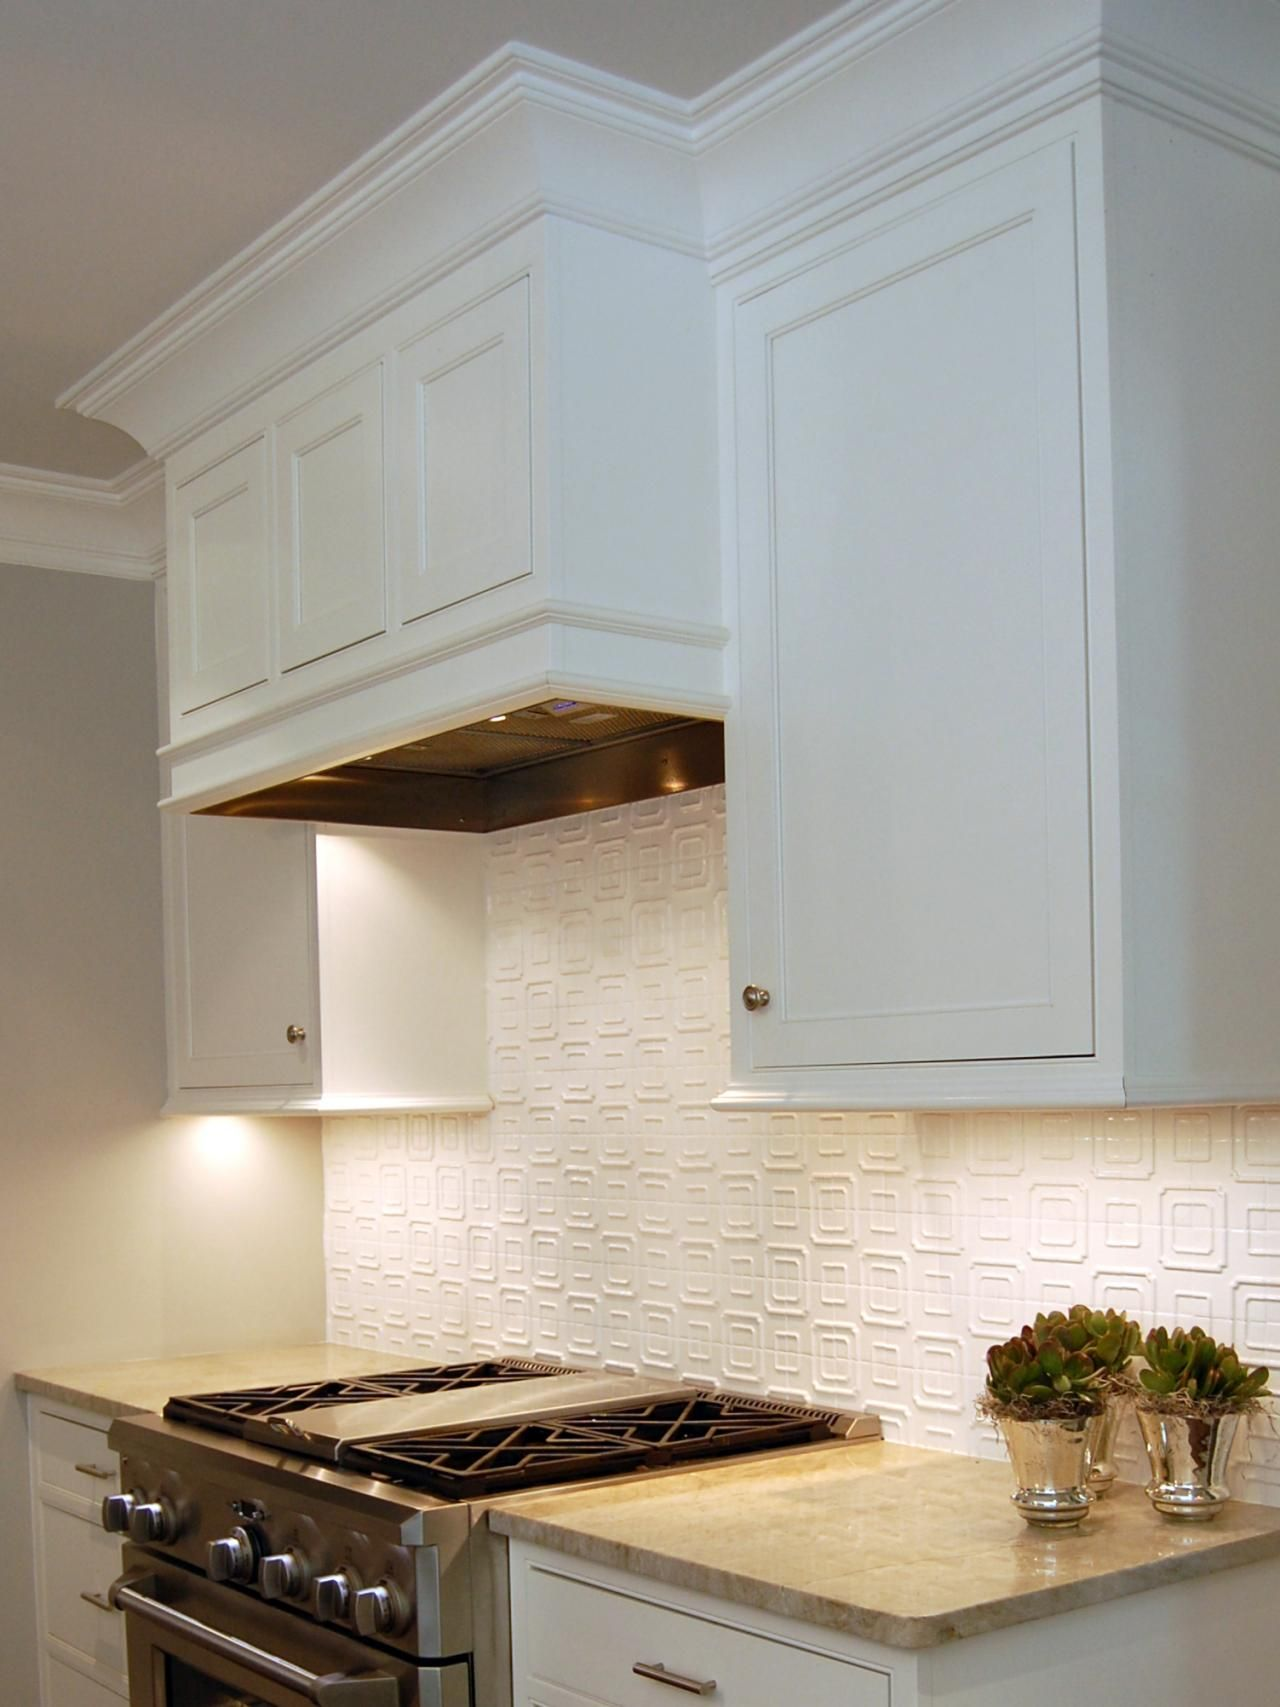 White Kitchen Exhaust Hoods the hidden range hood helps the open kitchen blend easily with the